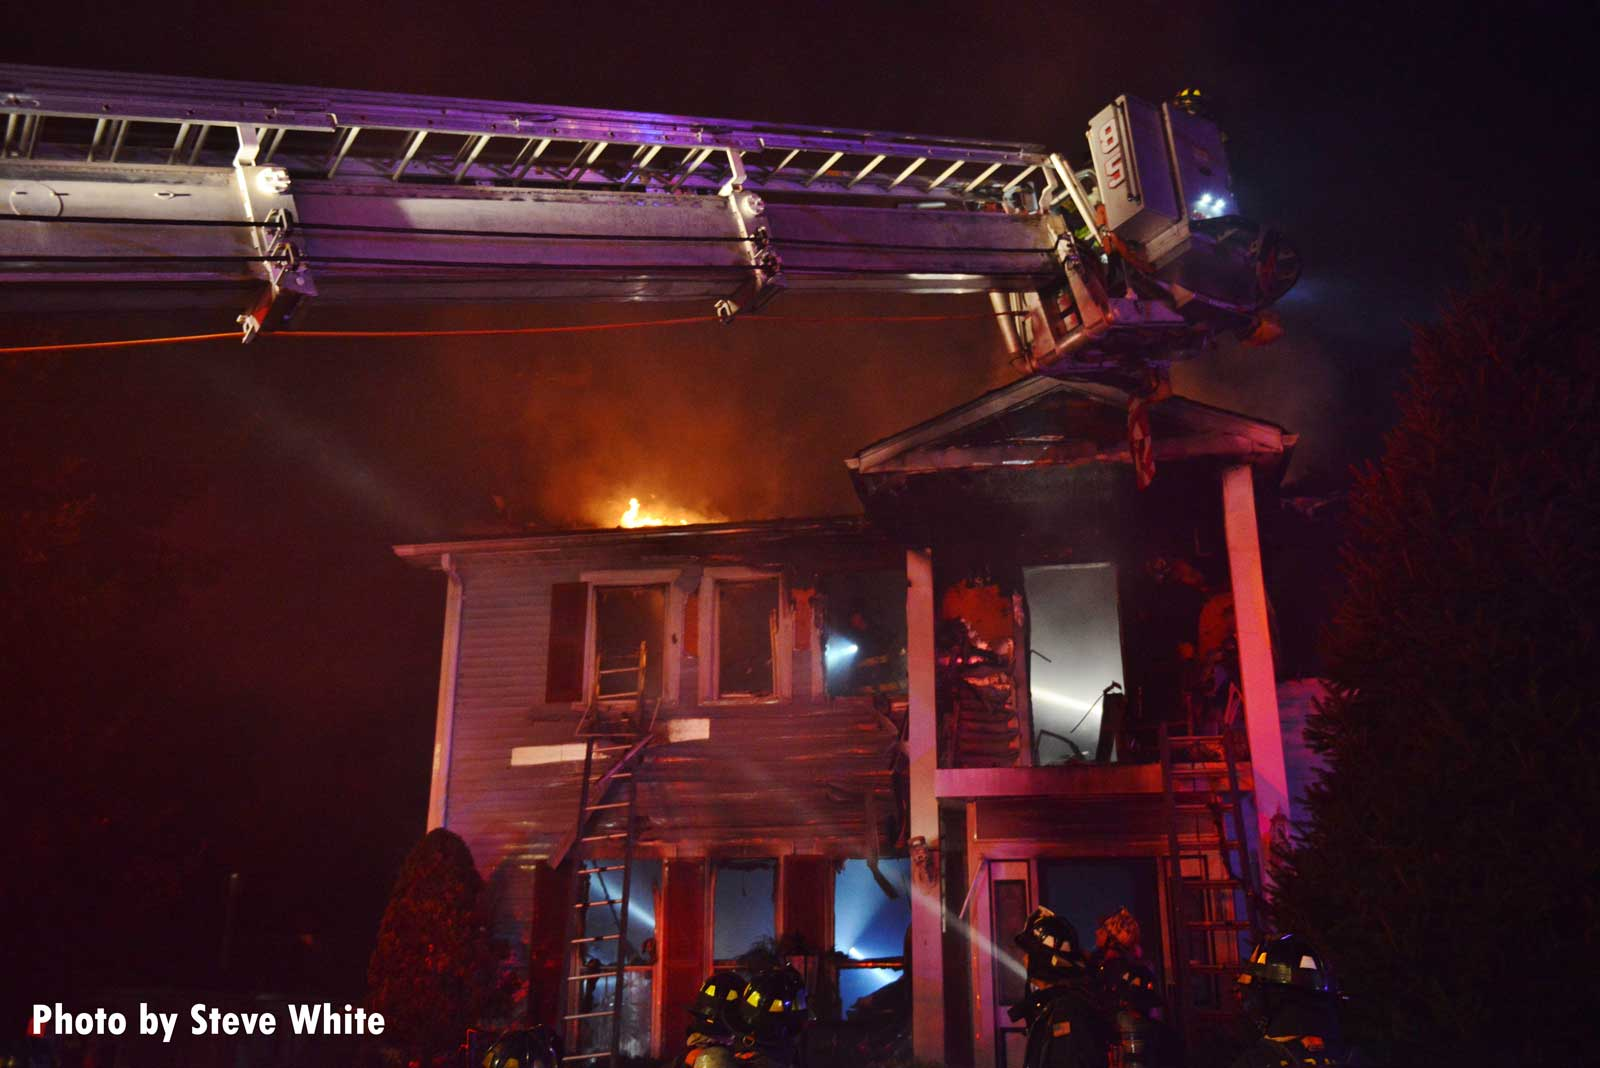 Another shot of house fire with FDNY apparatus and firefighters